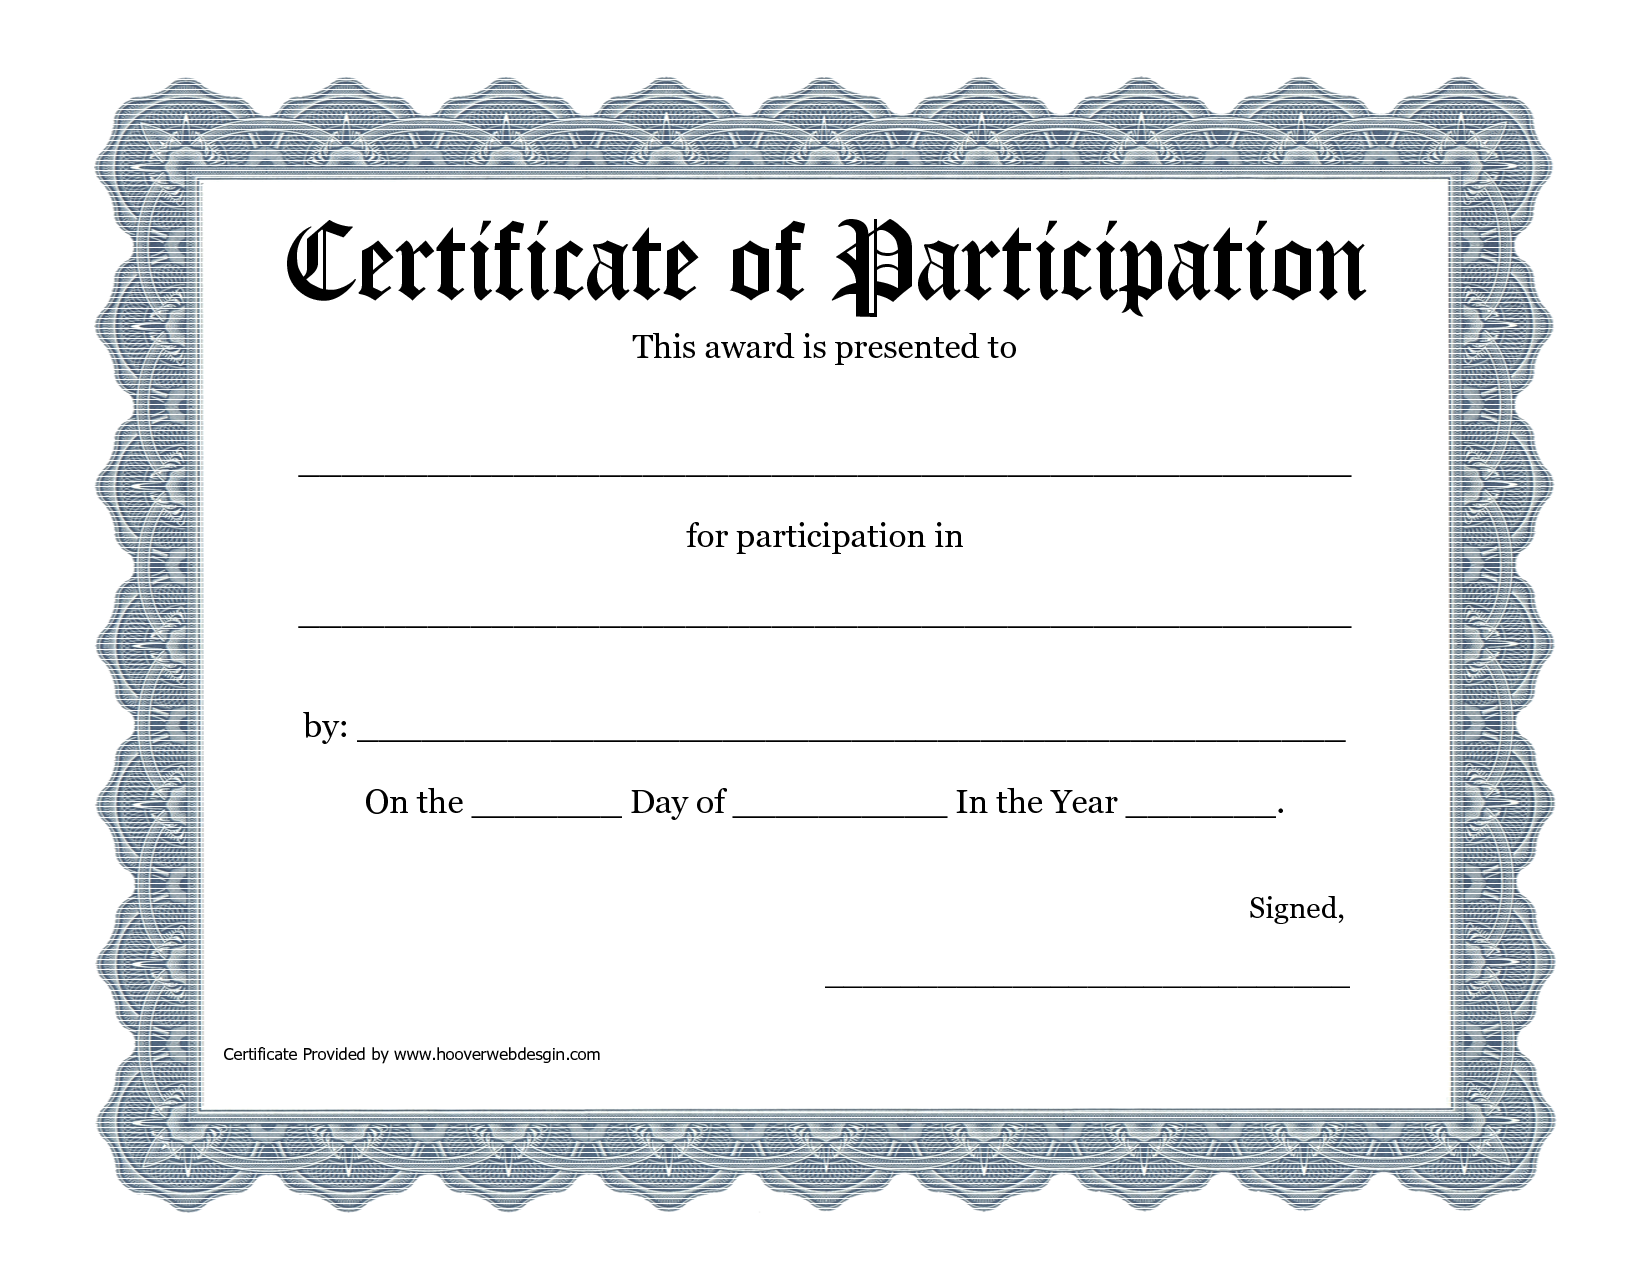 Delightful Https://i.pinimg.com/originals/d7/44/54/d74454249d... Regard To Certificate Of Participation Template